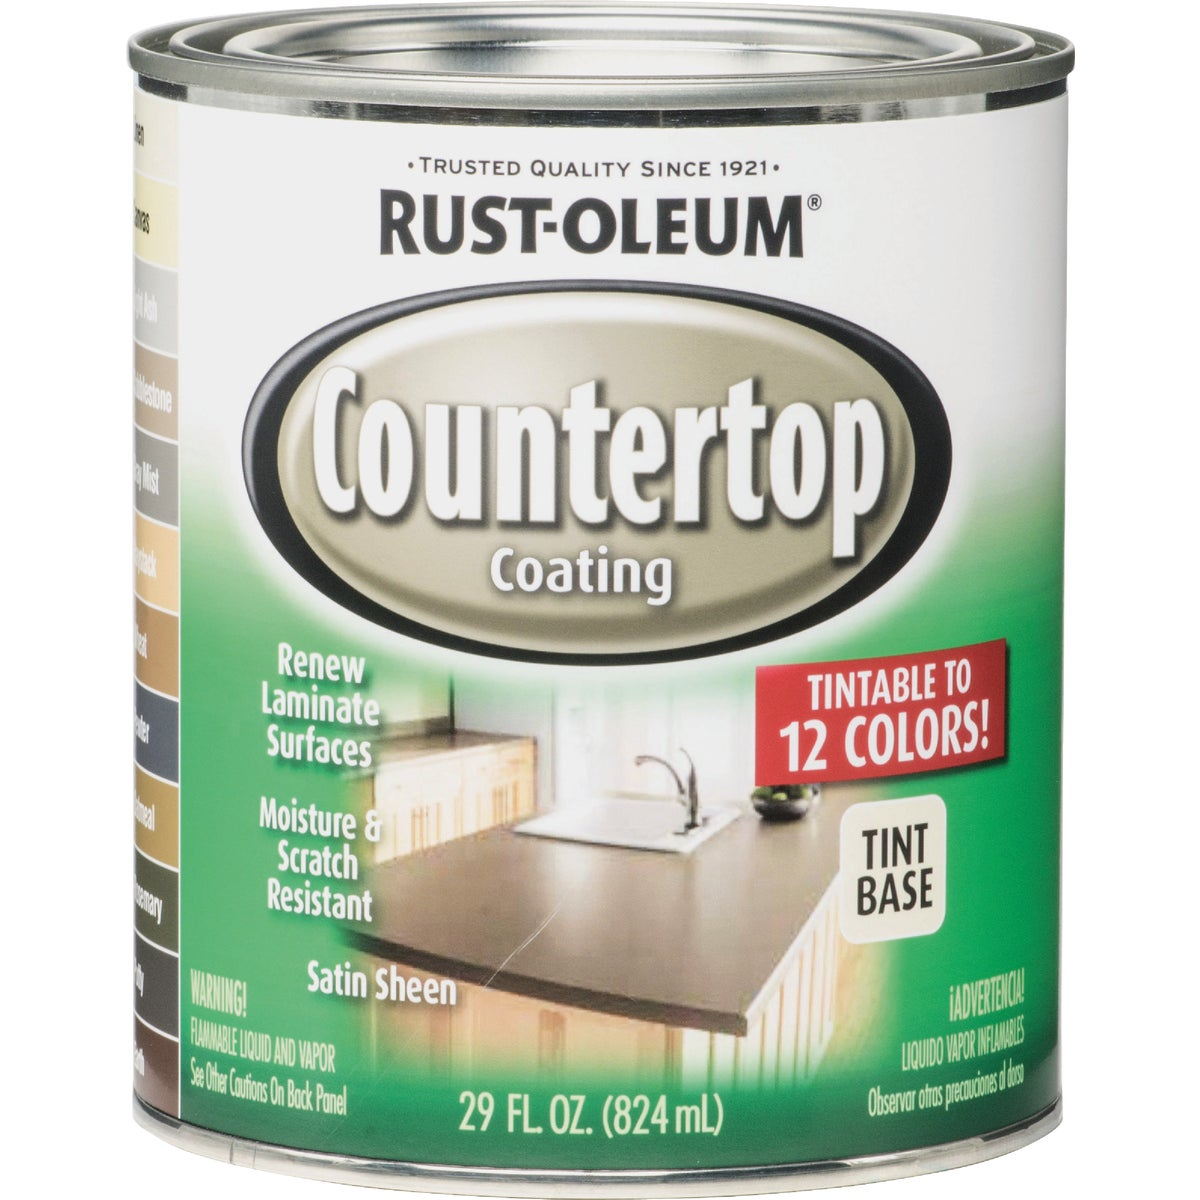 TINTBASE COUNTERTOP KIT - 246068 by Rustoleum